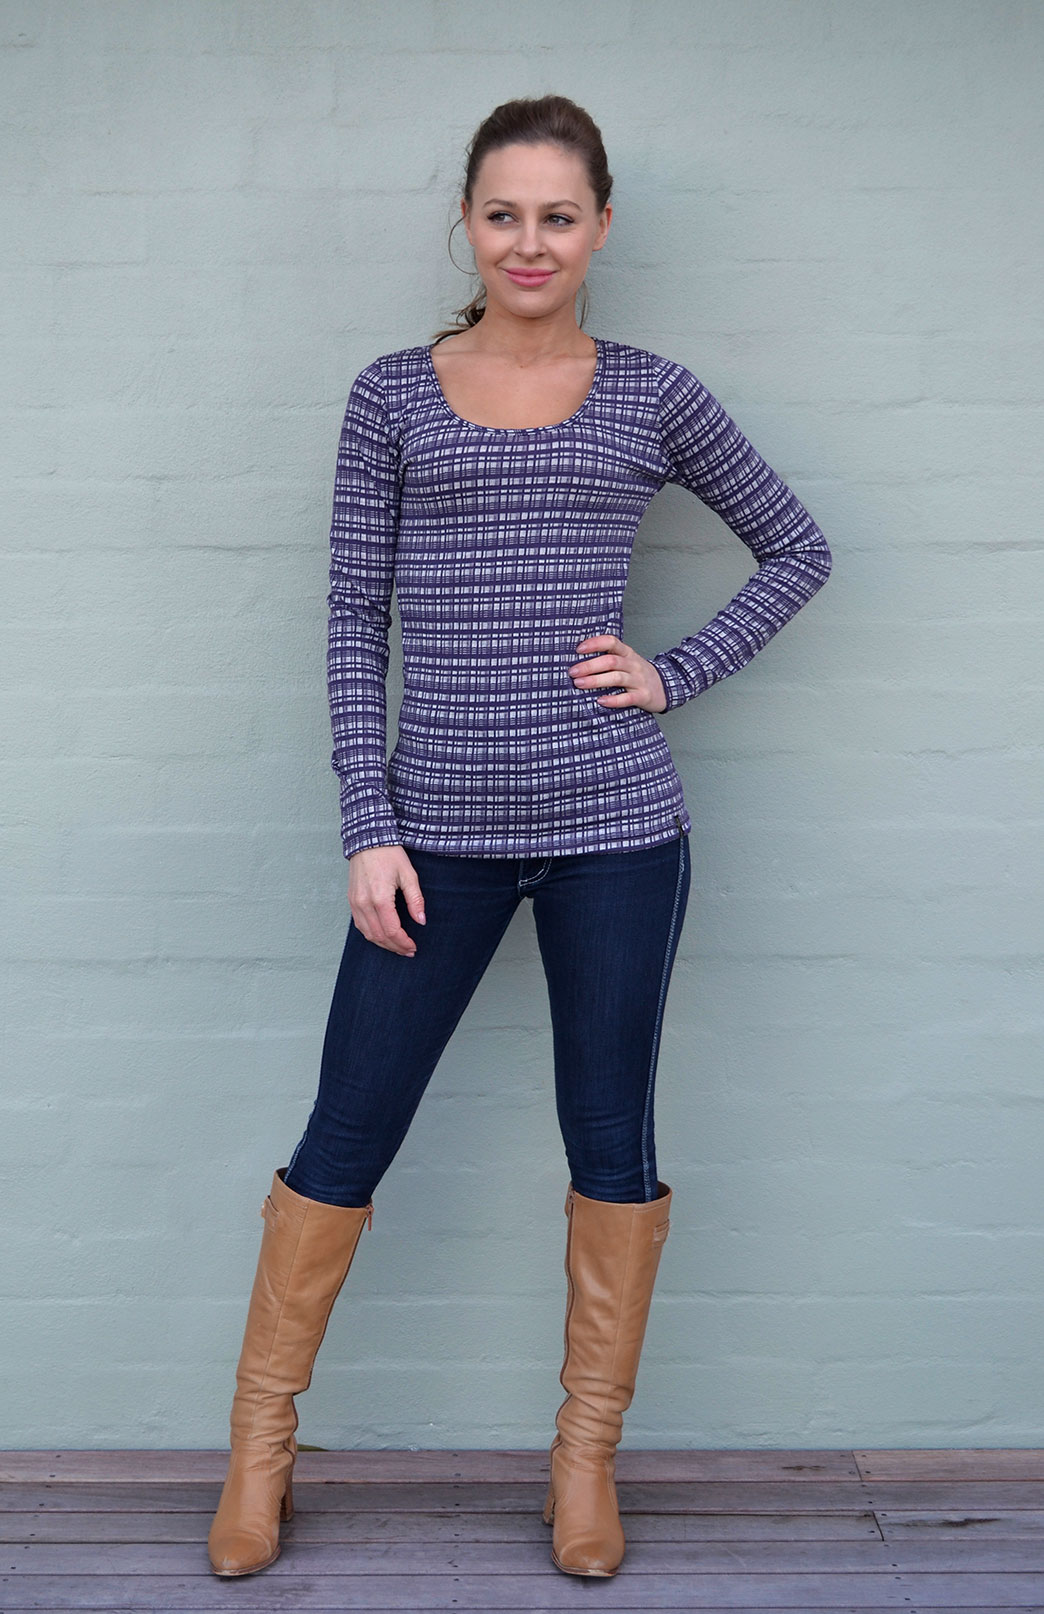 Patterned Scoop Top - Women's Grape Check Patterned Merino Modal Blend Long Sleeve Top - Smitten Merino Tasmania Australia